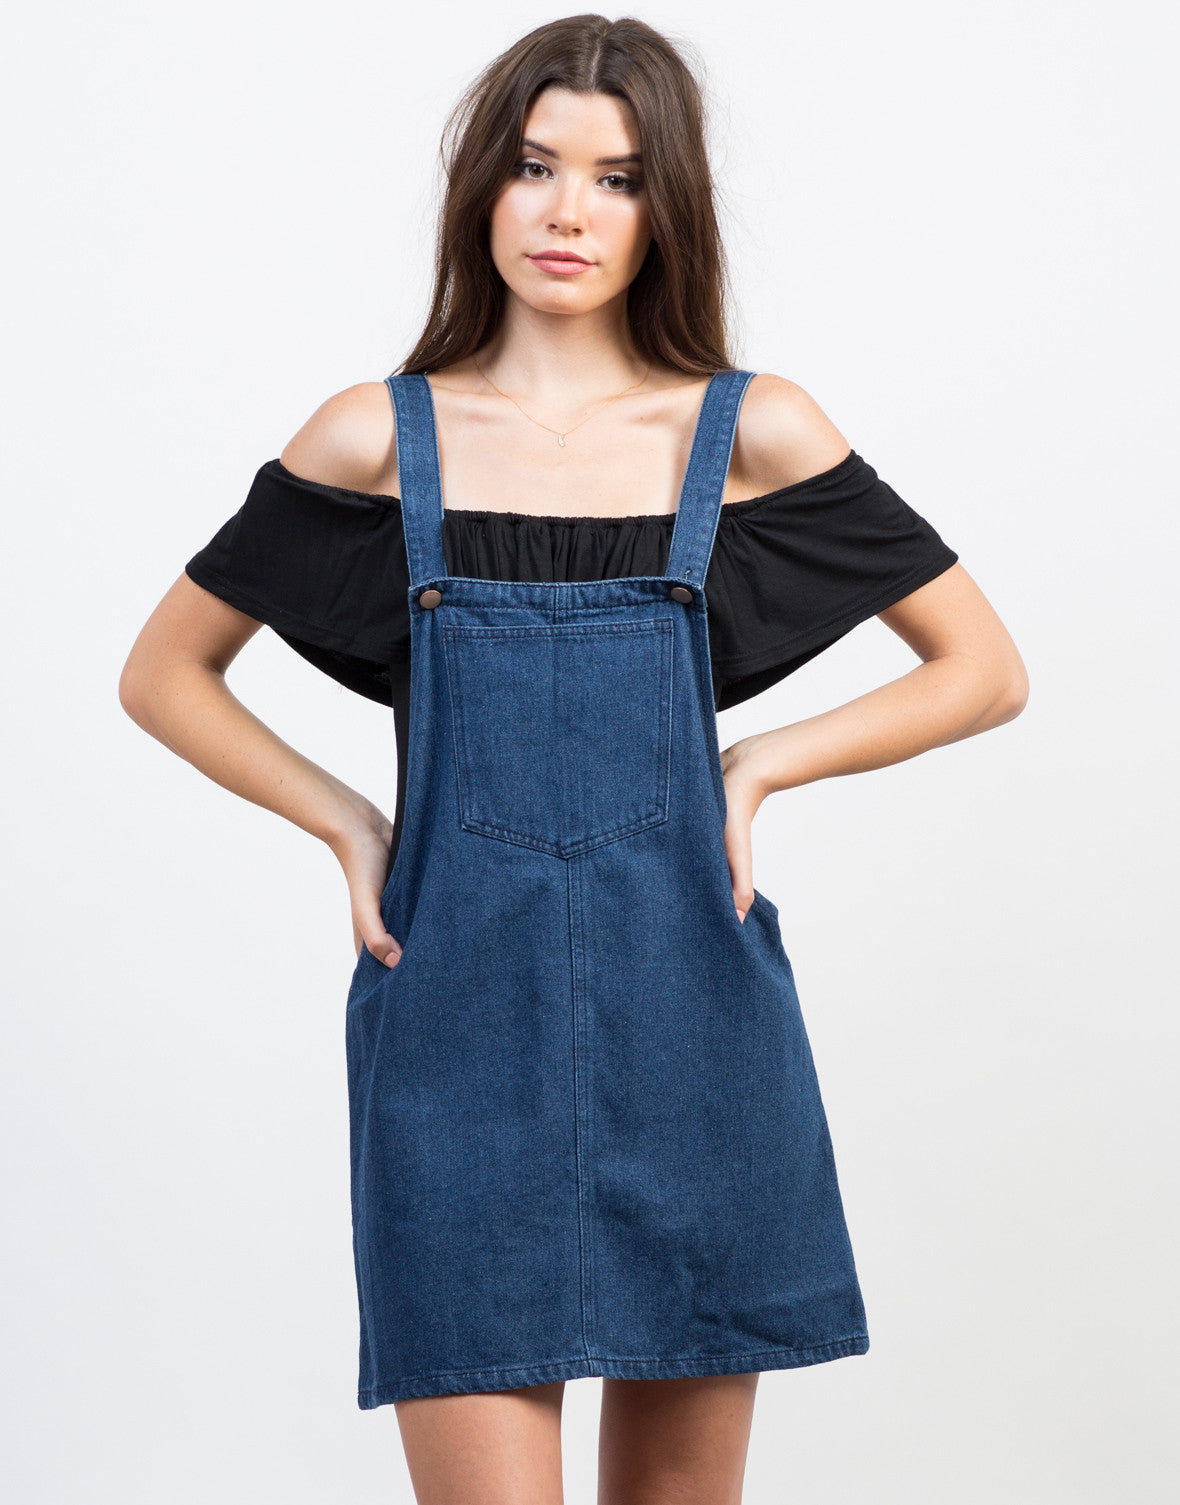 Shop for overall dress denim online at Target. Free shipping on purchases over $35 and save 5% every day with your Target REDcard.